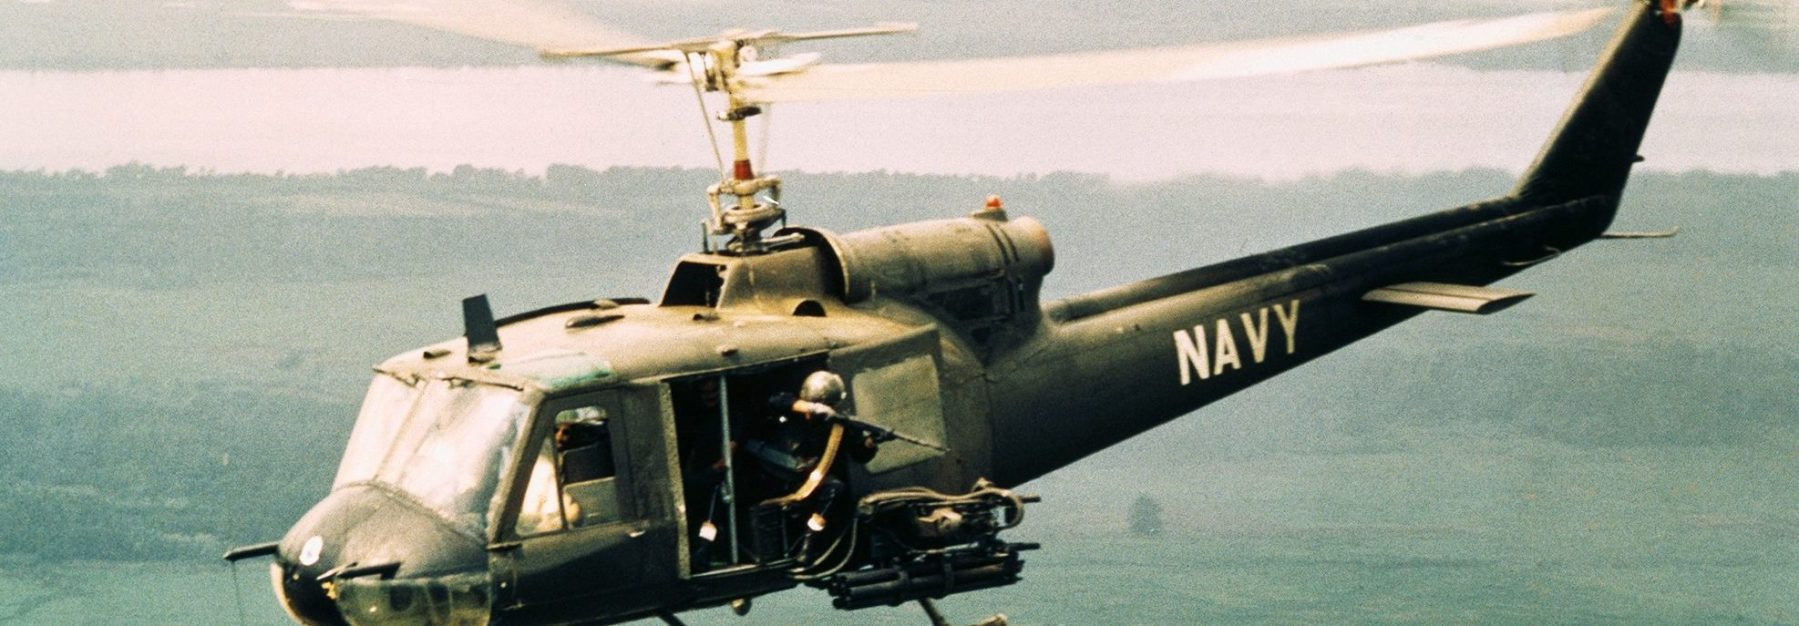 Recorded Audio From a Helicopter Rescue Mission During the